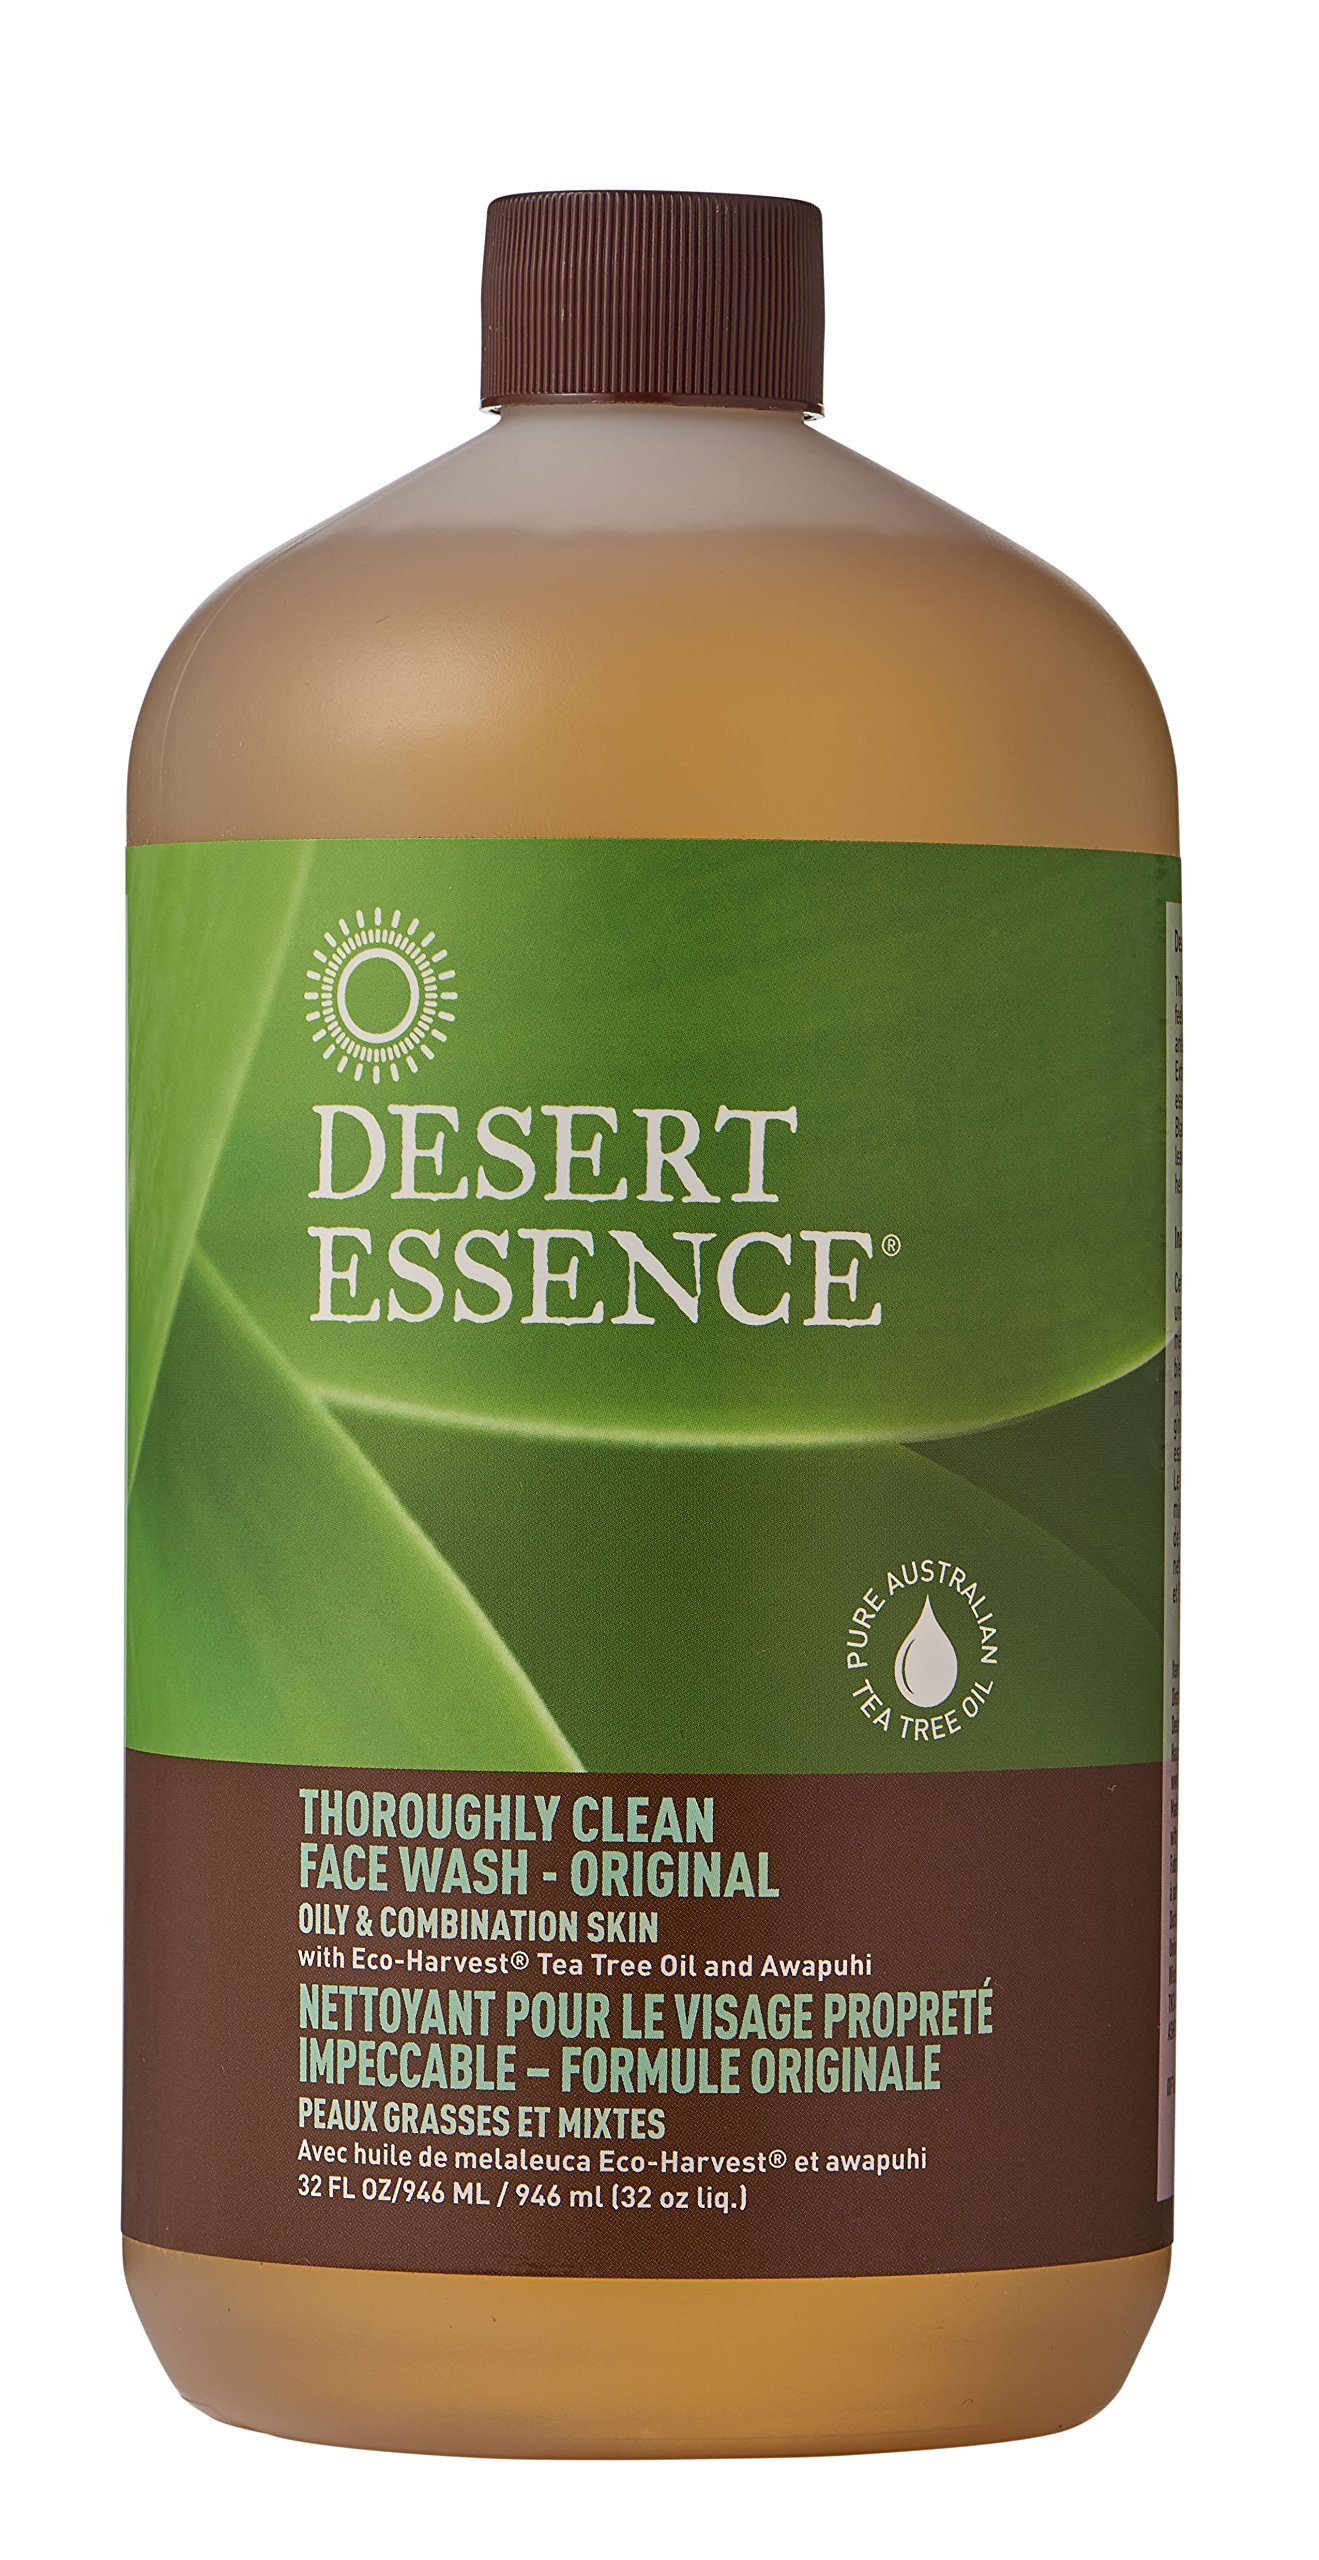 Desert Essence Thoroughly Clean Face Wash - Original - 32 Fl Oz - Tea Tree Oil - For Soft Radiant Skin - Gentle Cleanser - Extracts Of Goldenseal, Awapuhi, Chamomile Essential Oils by Desert Essence